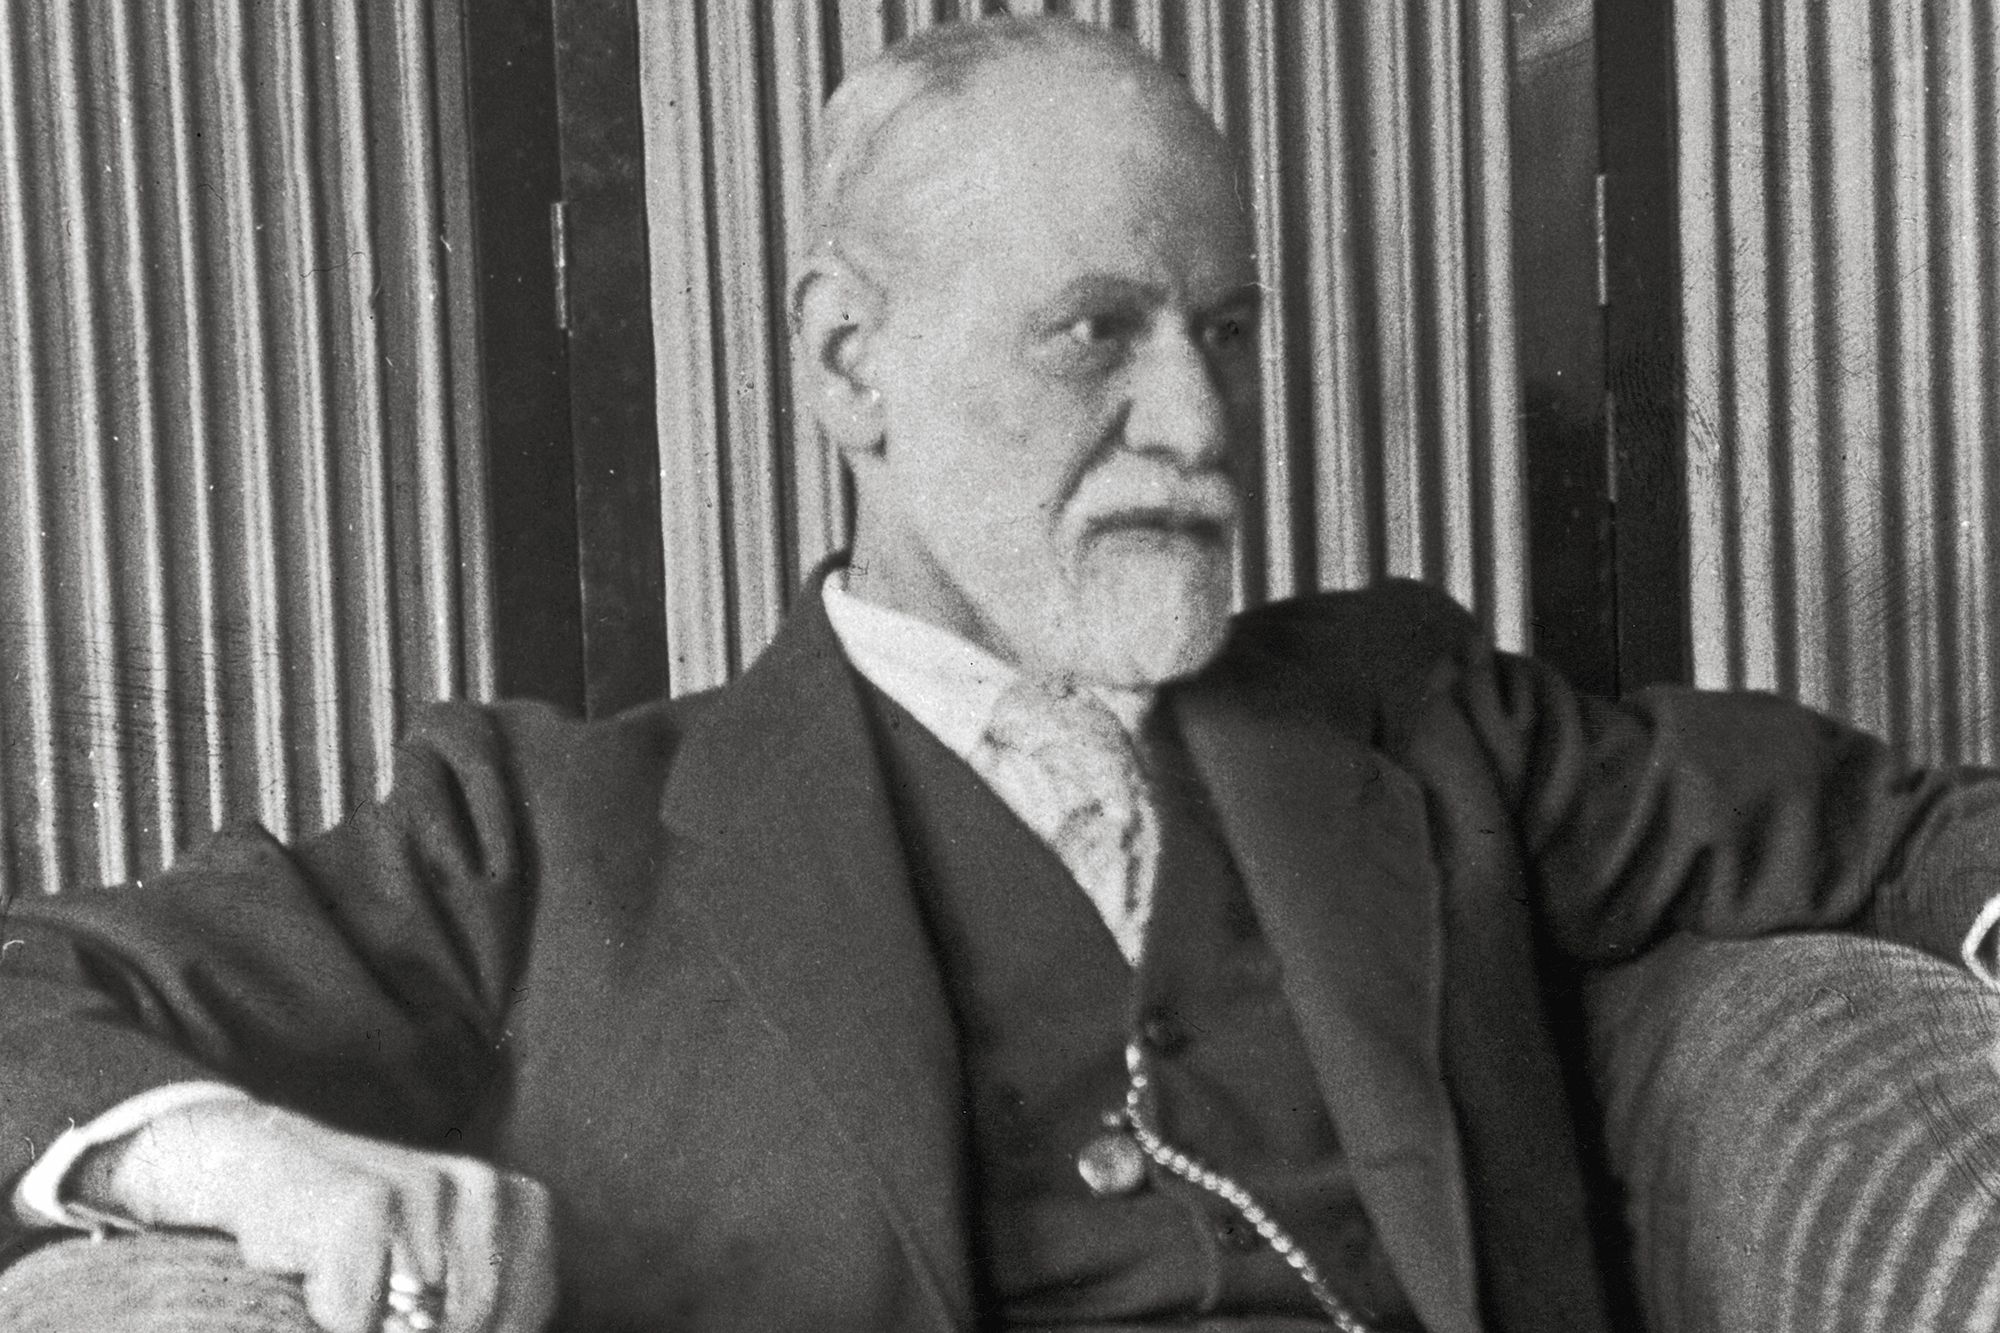 a look at the jungs unsatisfaction with sigmund freuds work Sigmund freud (may 6, 1856 - september 23, 1939) was an austrian neurologist who founded the psychoanalytic school of psychiatry freud is best known for his theories of the unconscious mind and the defense mechanism of repression.